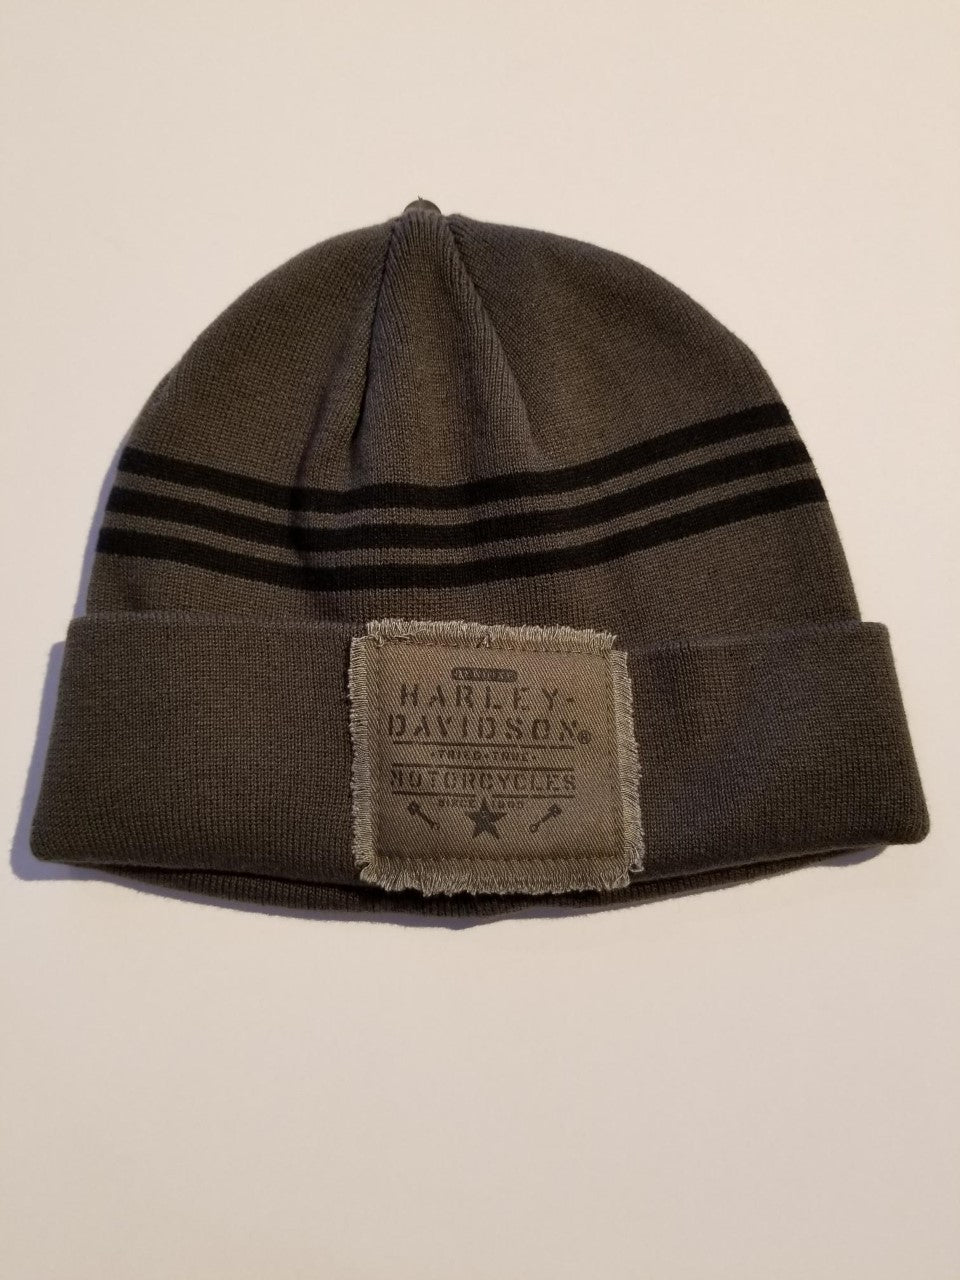 Harley-Davidson patch cuffed knit hat men's classic olive